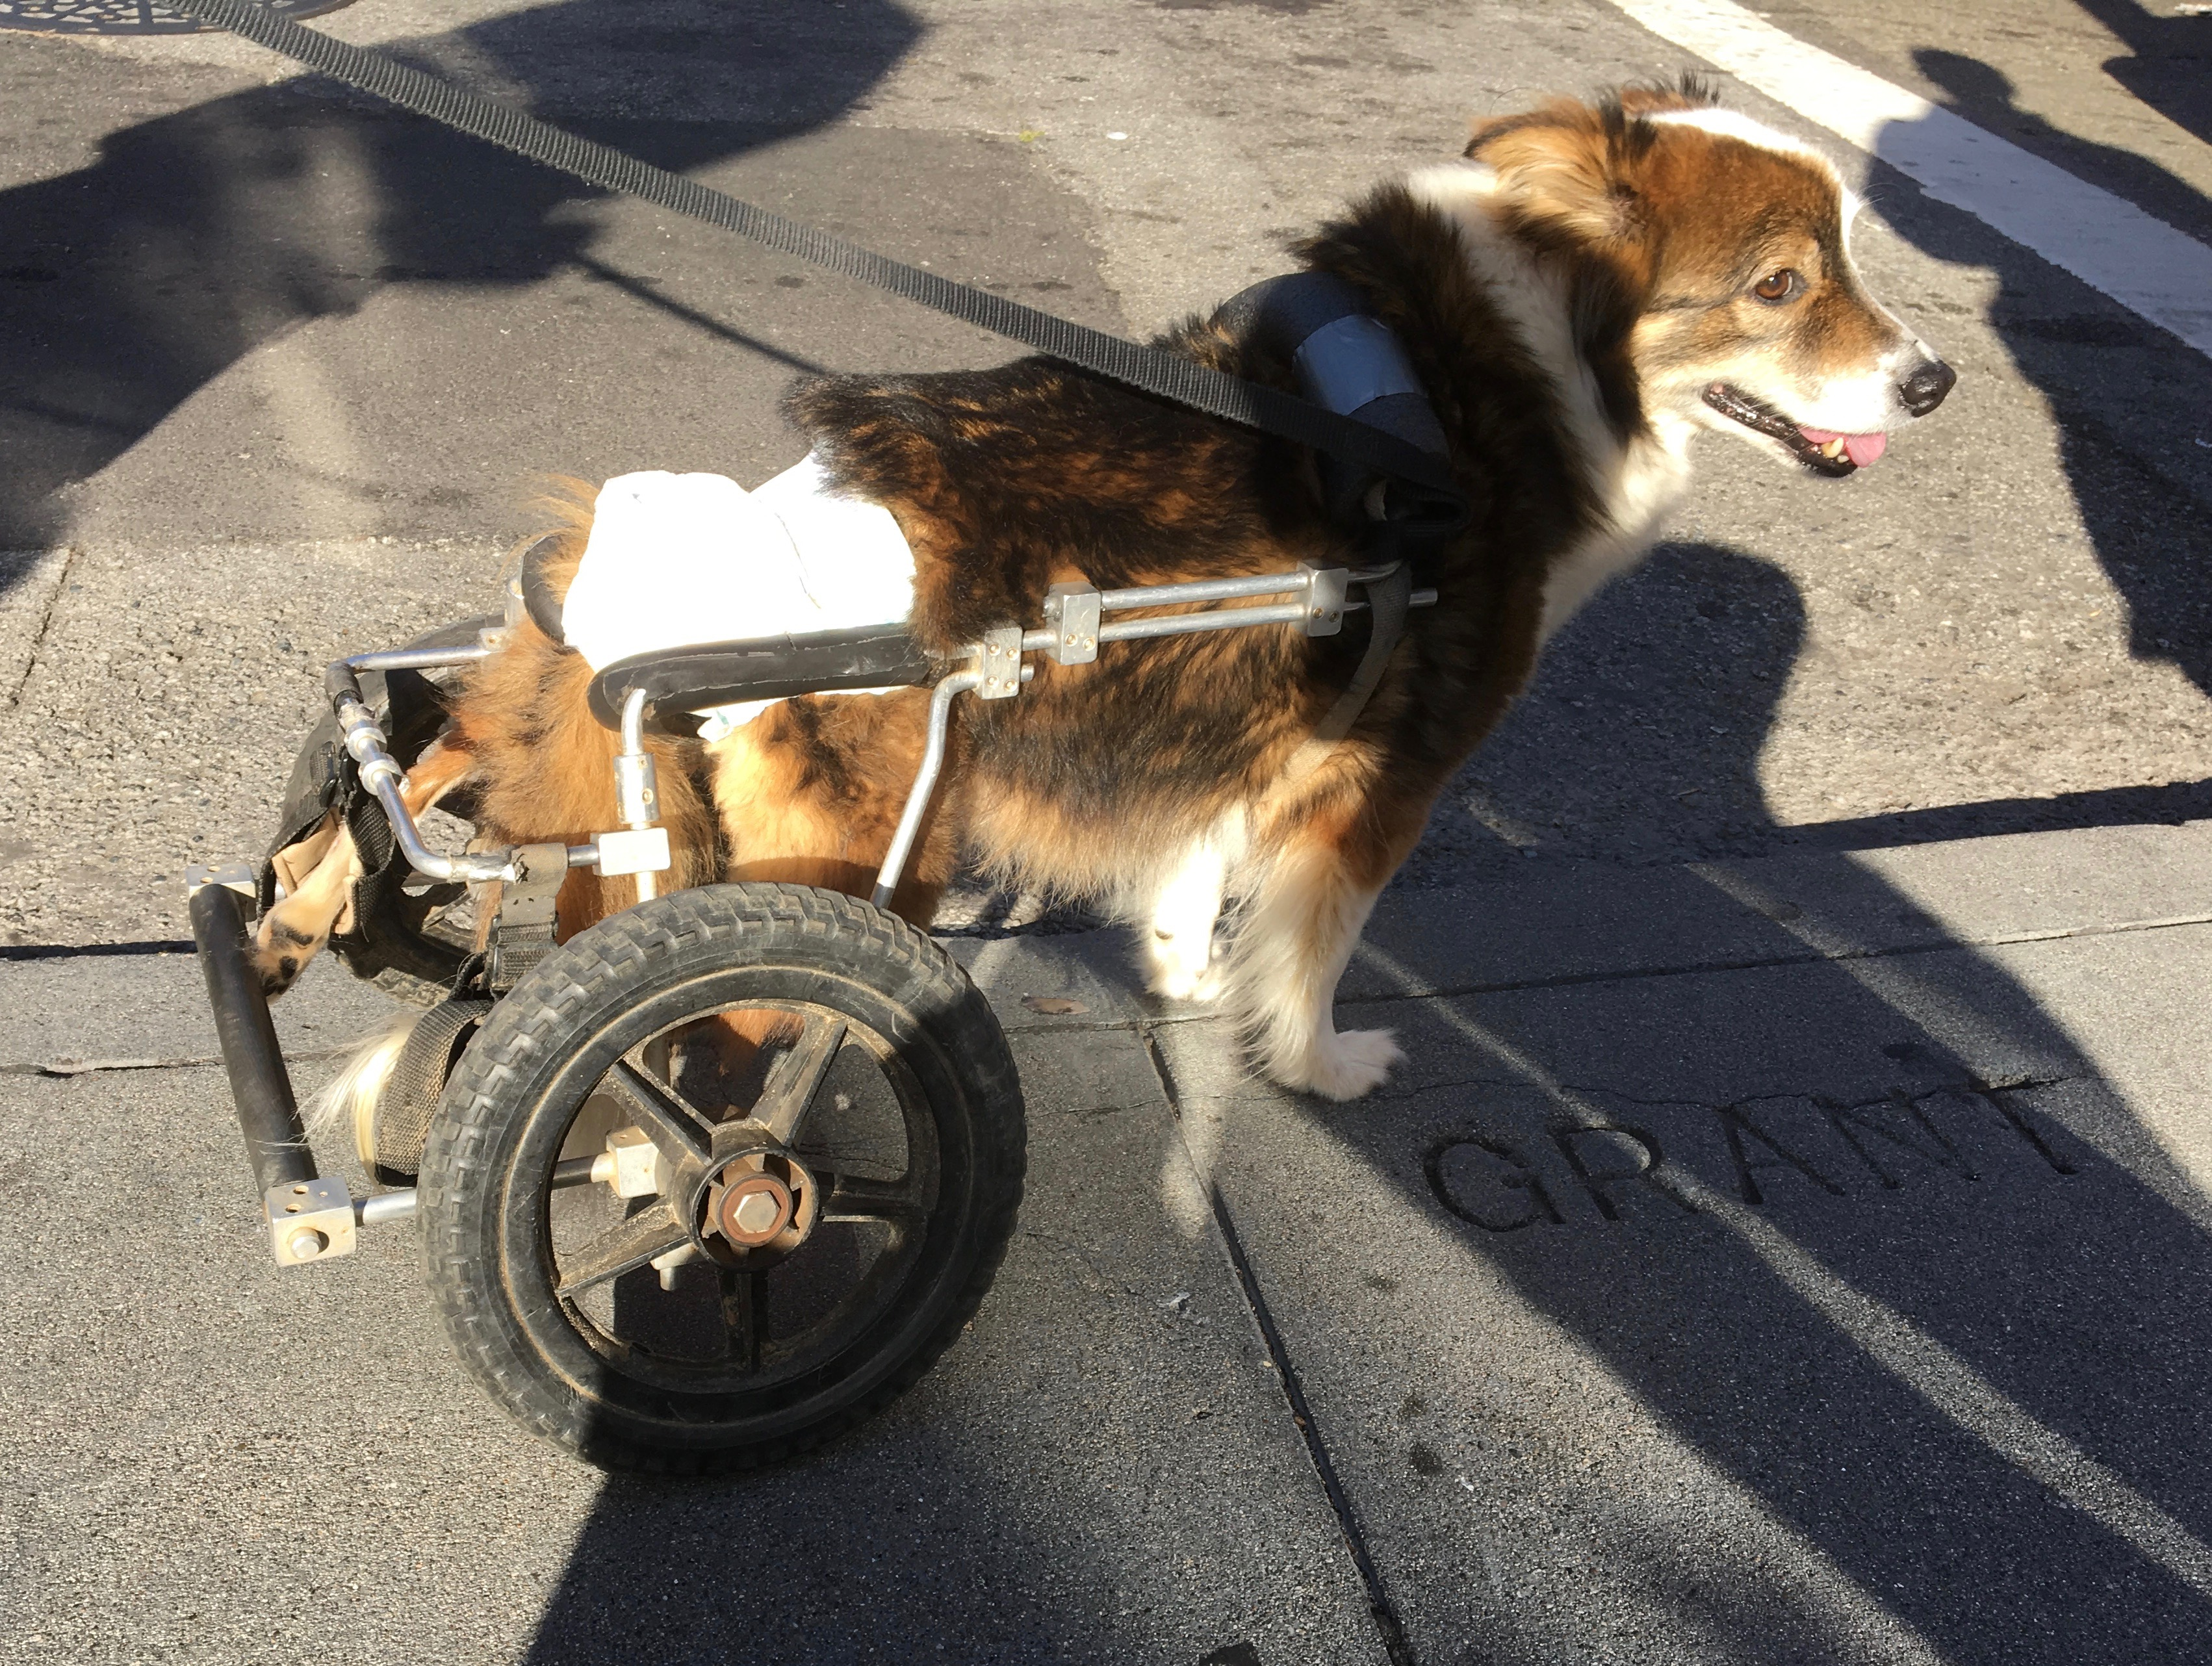 Herding Dog Mix With Wheeled Cart On Hind Legs